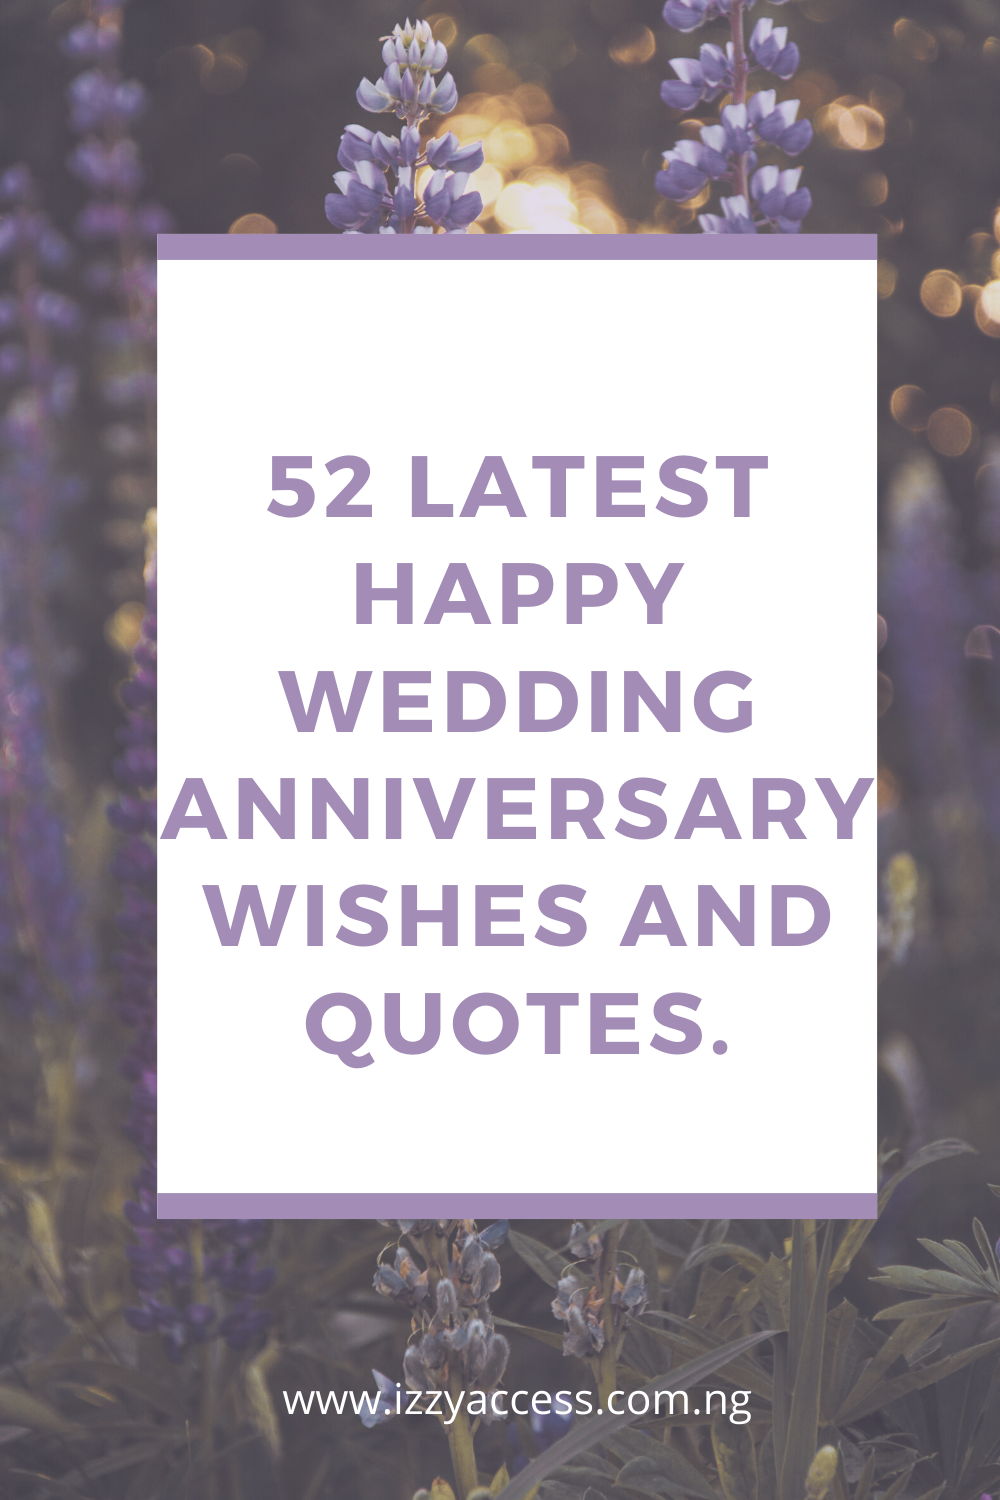 LATEST HAPPY WEDDING ANNIVERSARY WISHES AND QUOTES in 2020